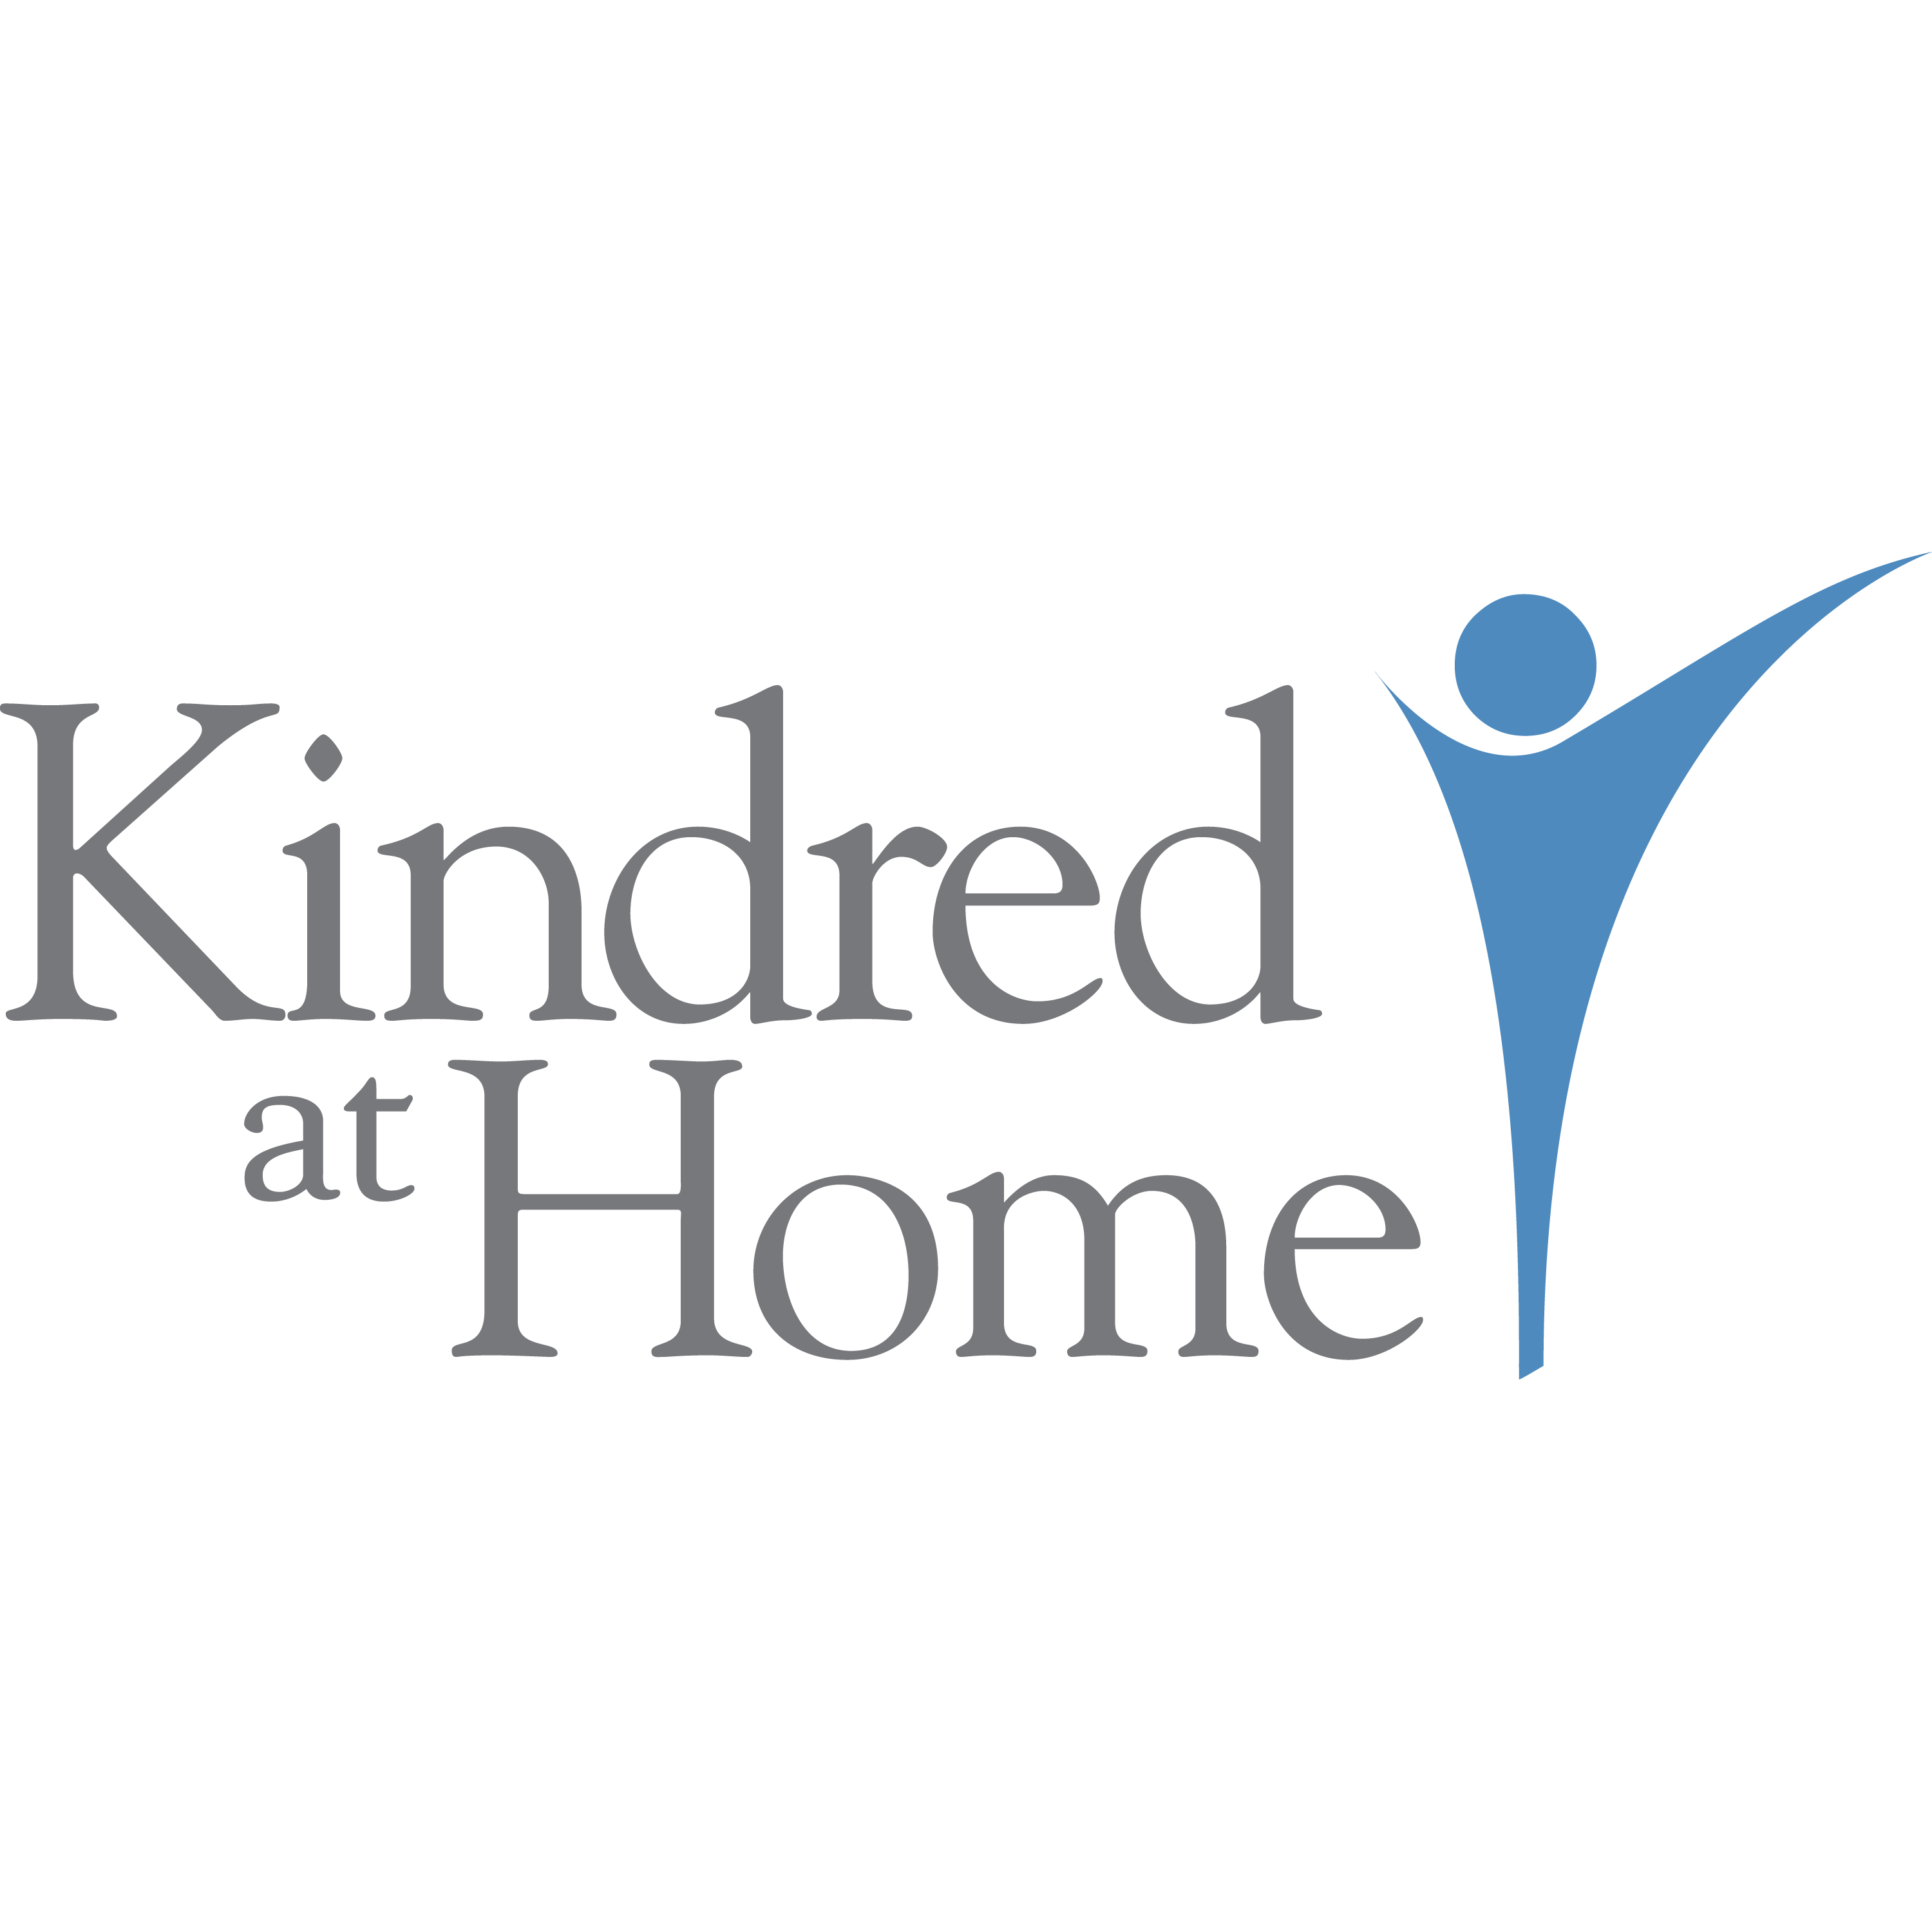 Kindred at Home - Winston Salem, NC